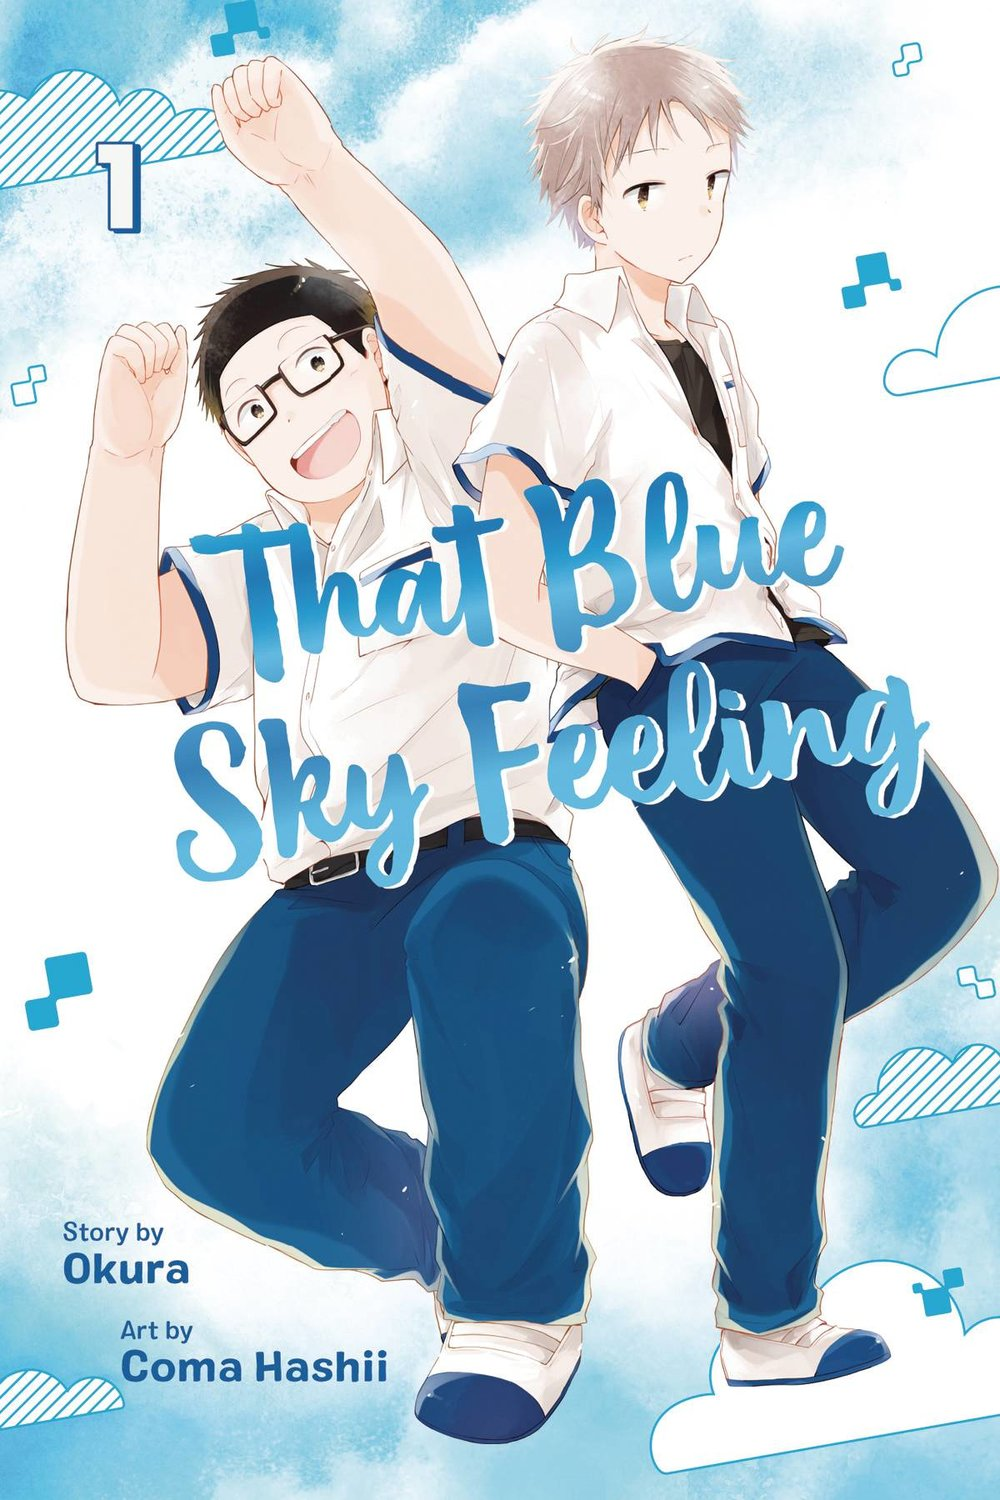 THAT BLUE SKY FEELING GN VOL 01